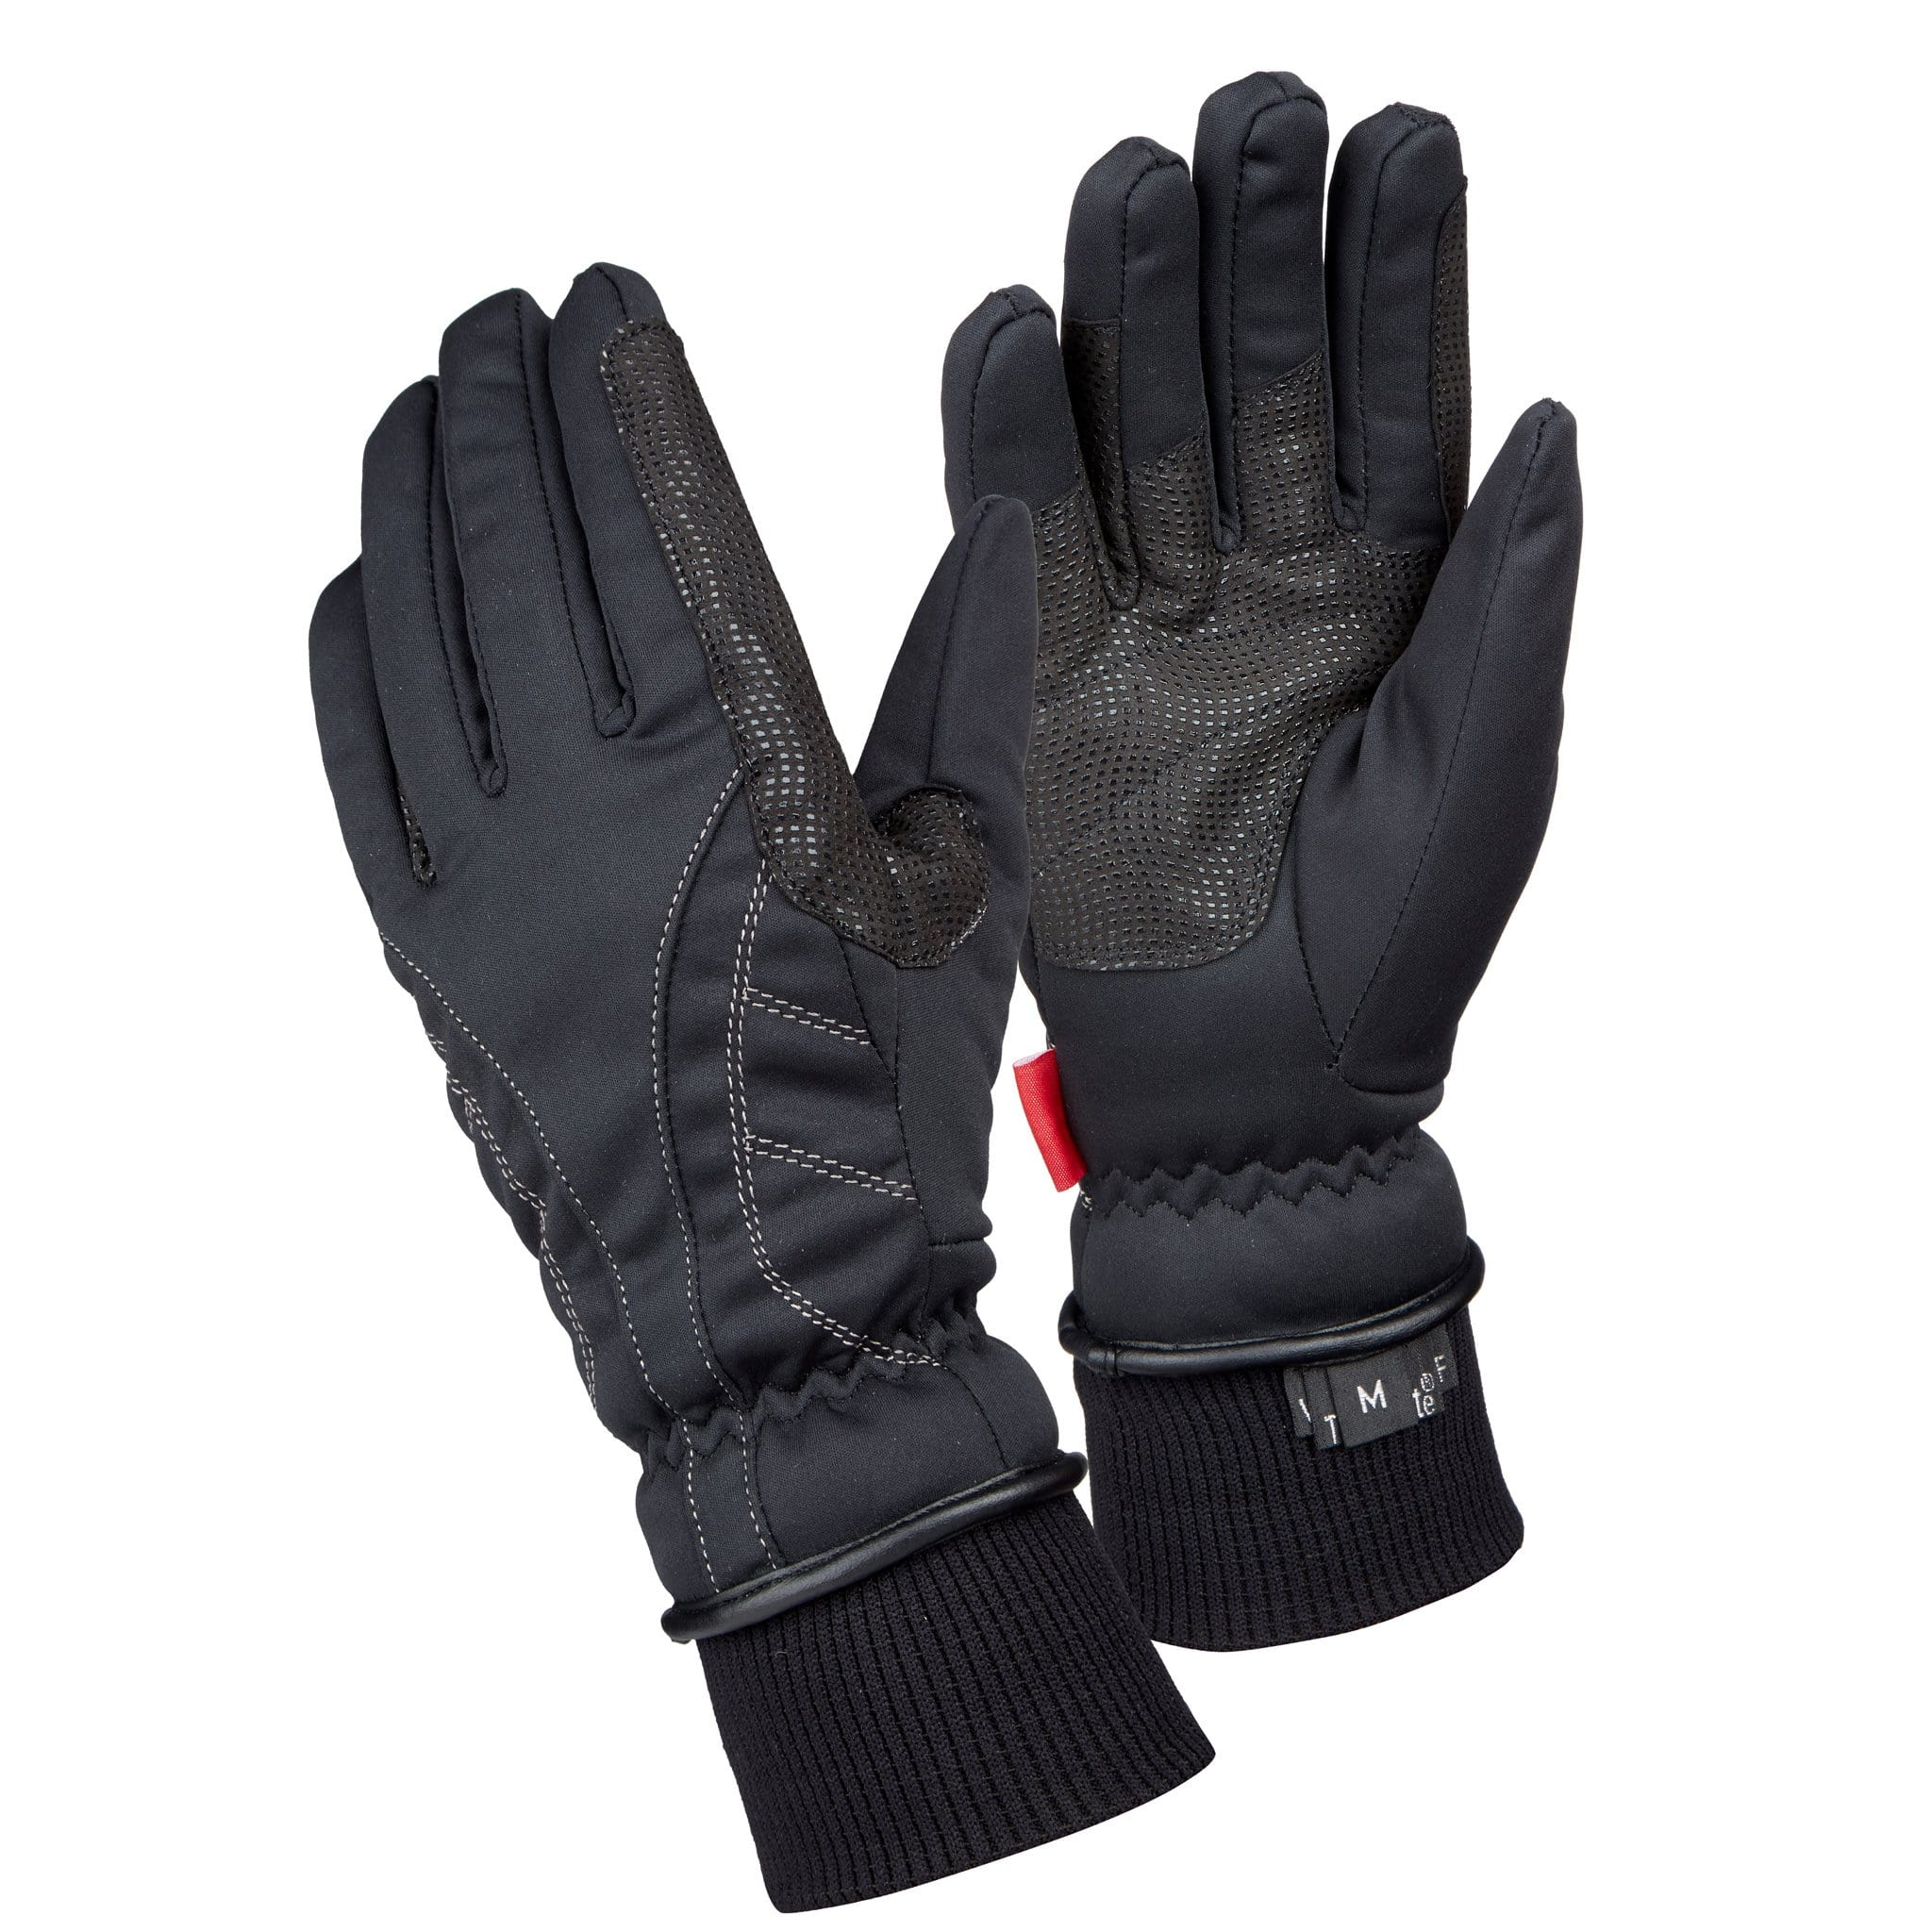 LeMieux Waterproof Riding Glove Pair 9993